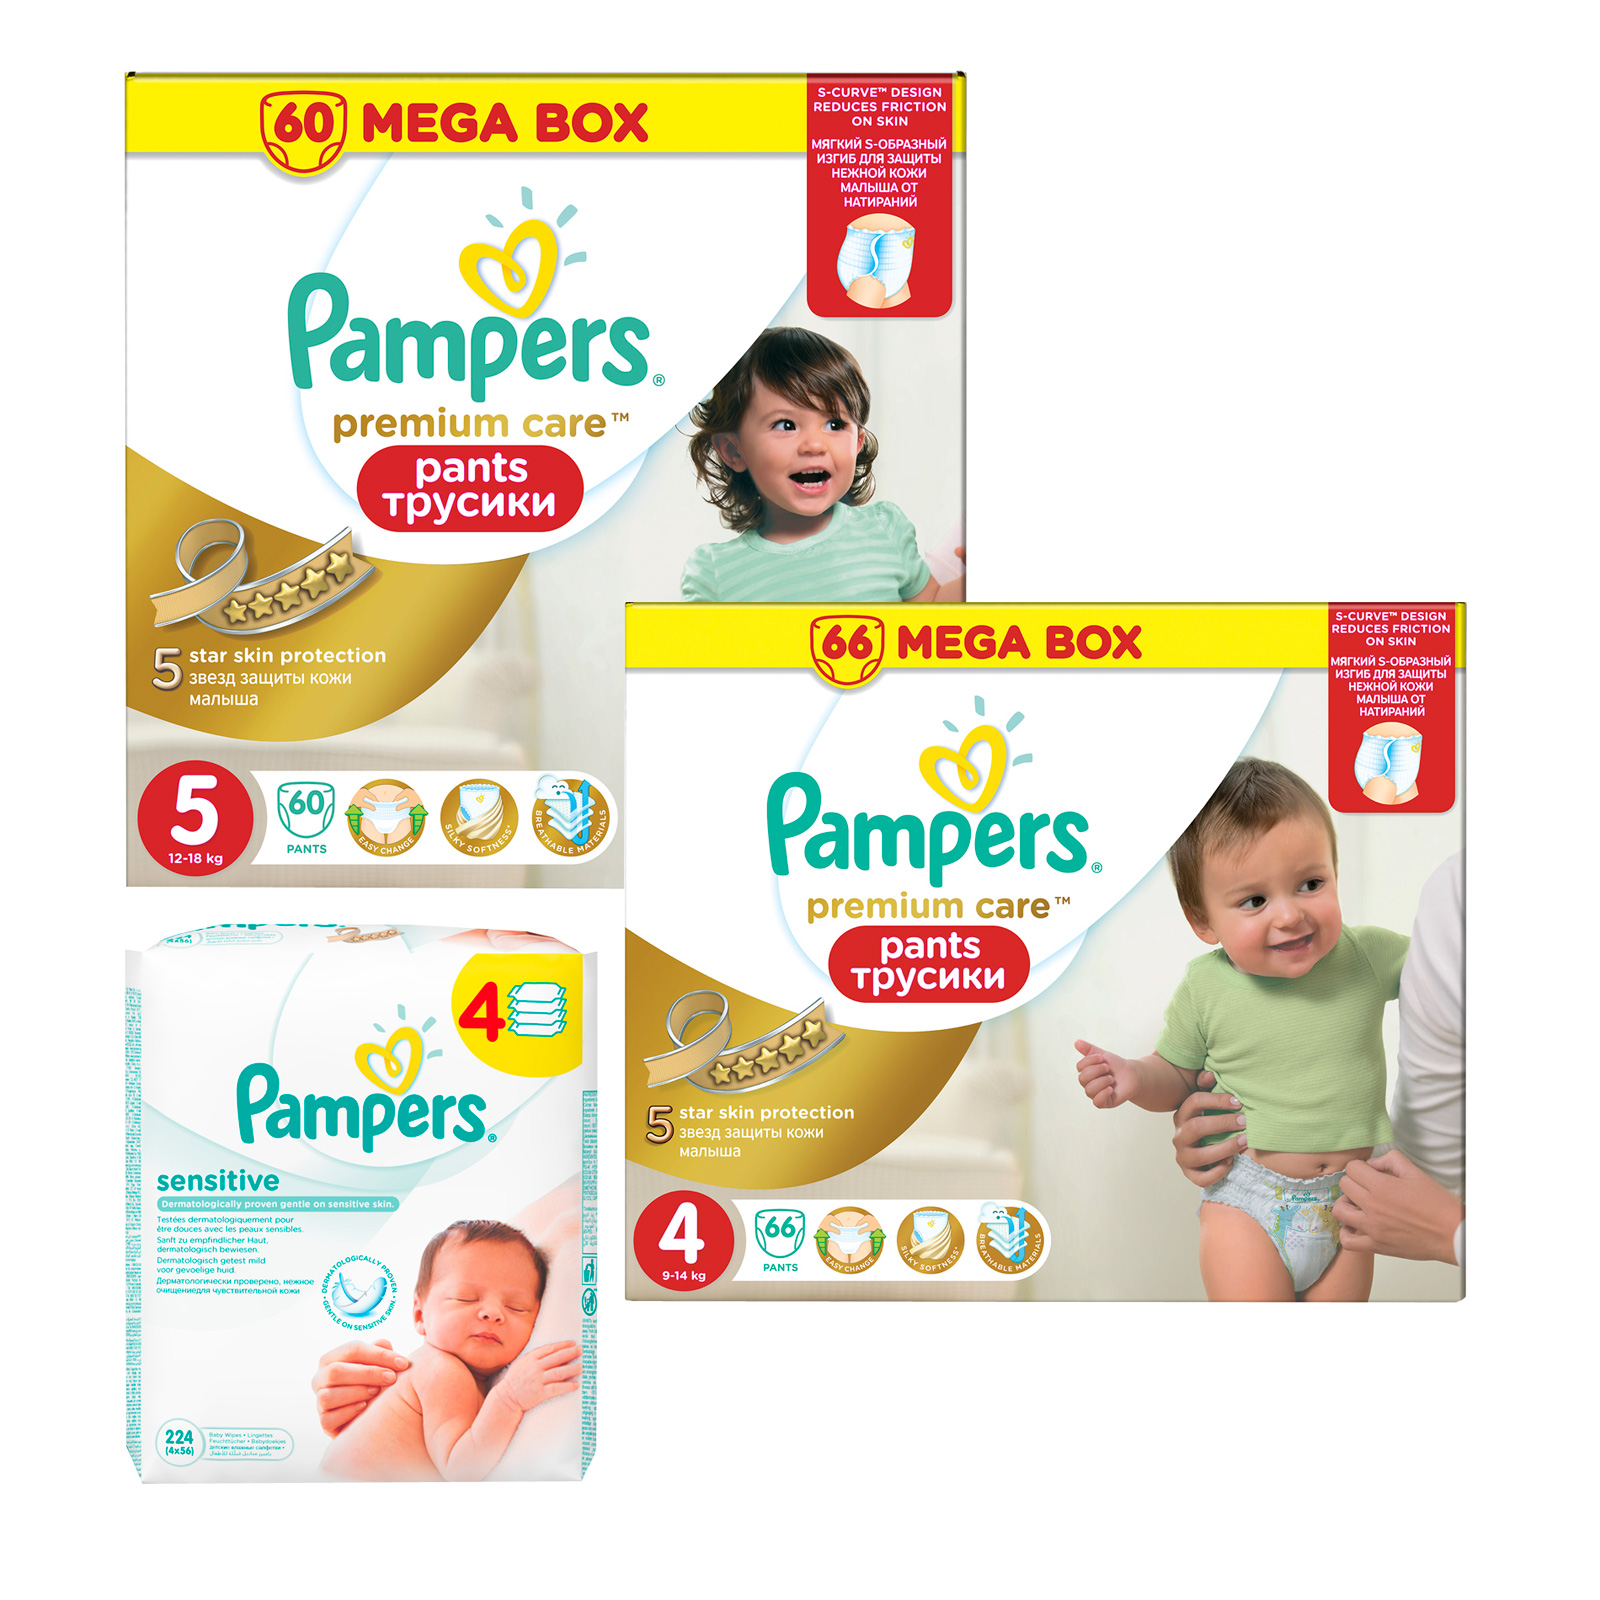 Набор Pampers №8 Трусики Pampers Premium care 4-5 + салфетки<br>